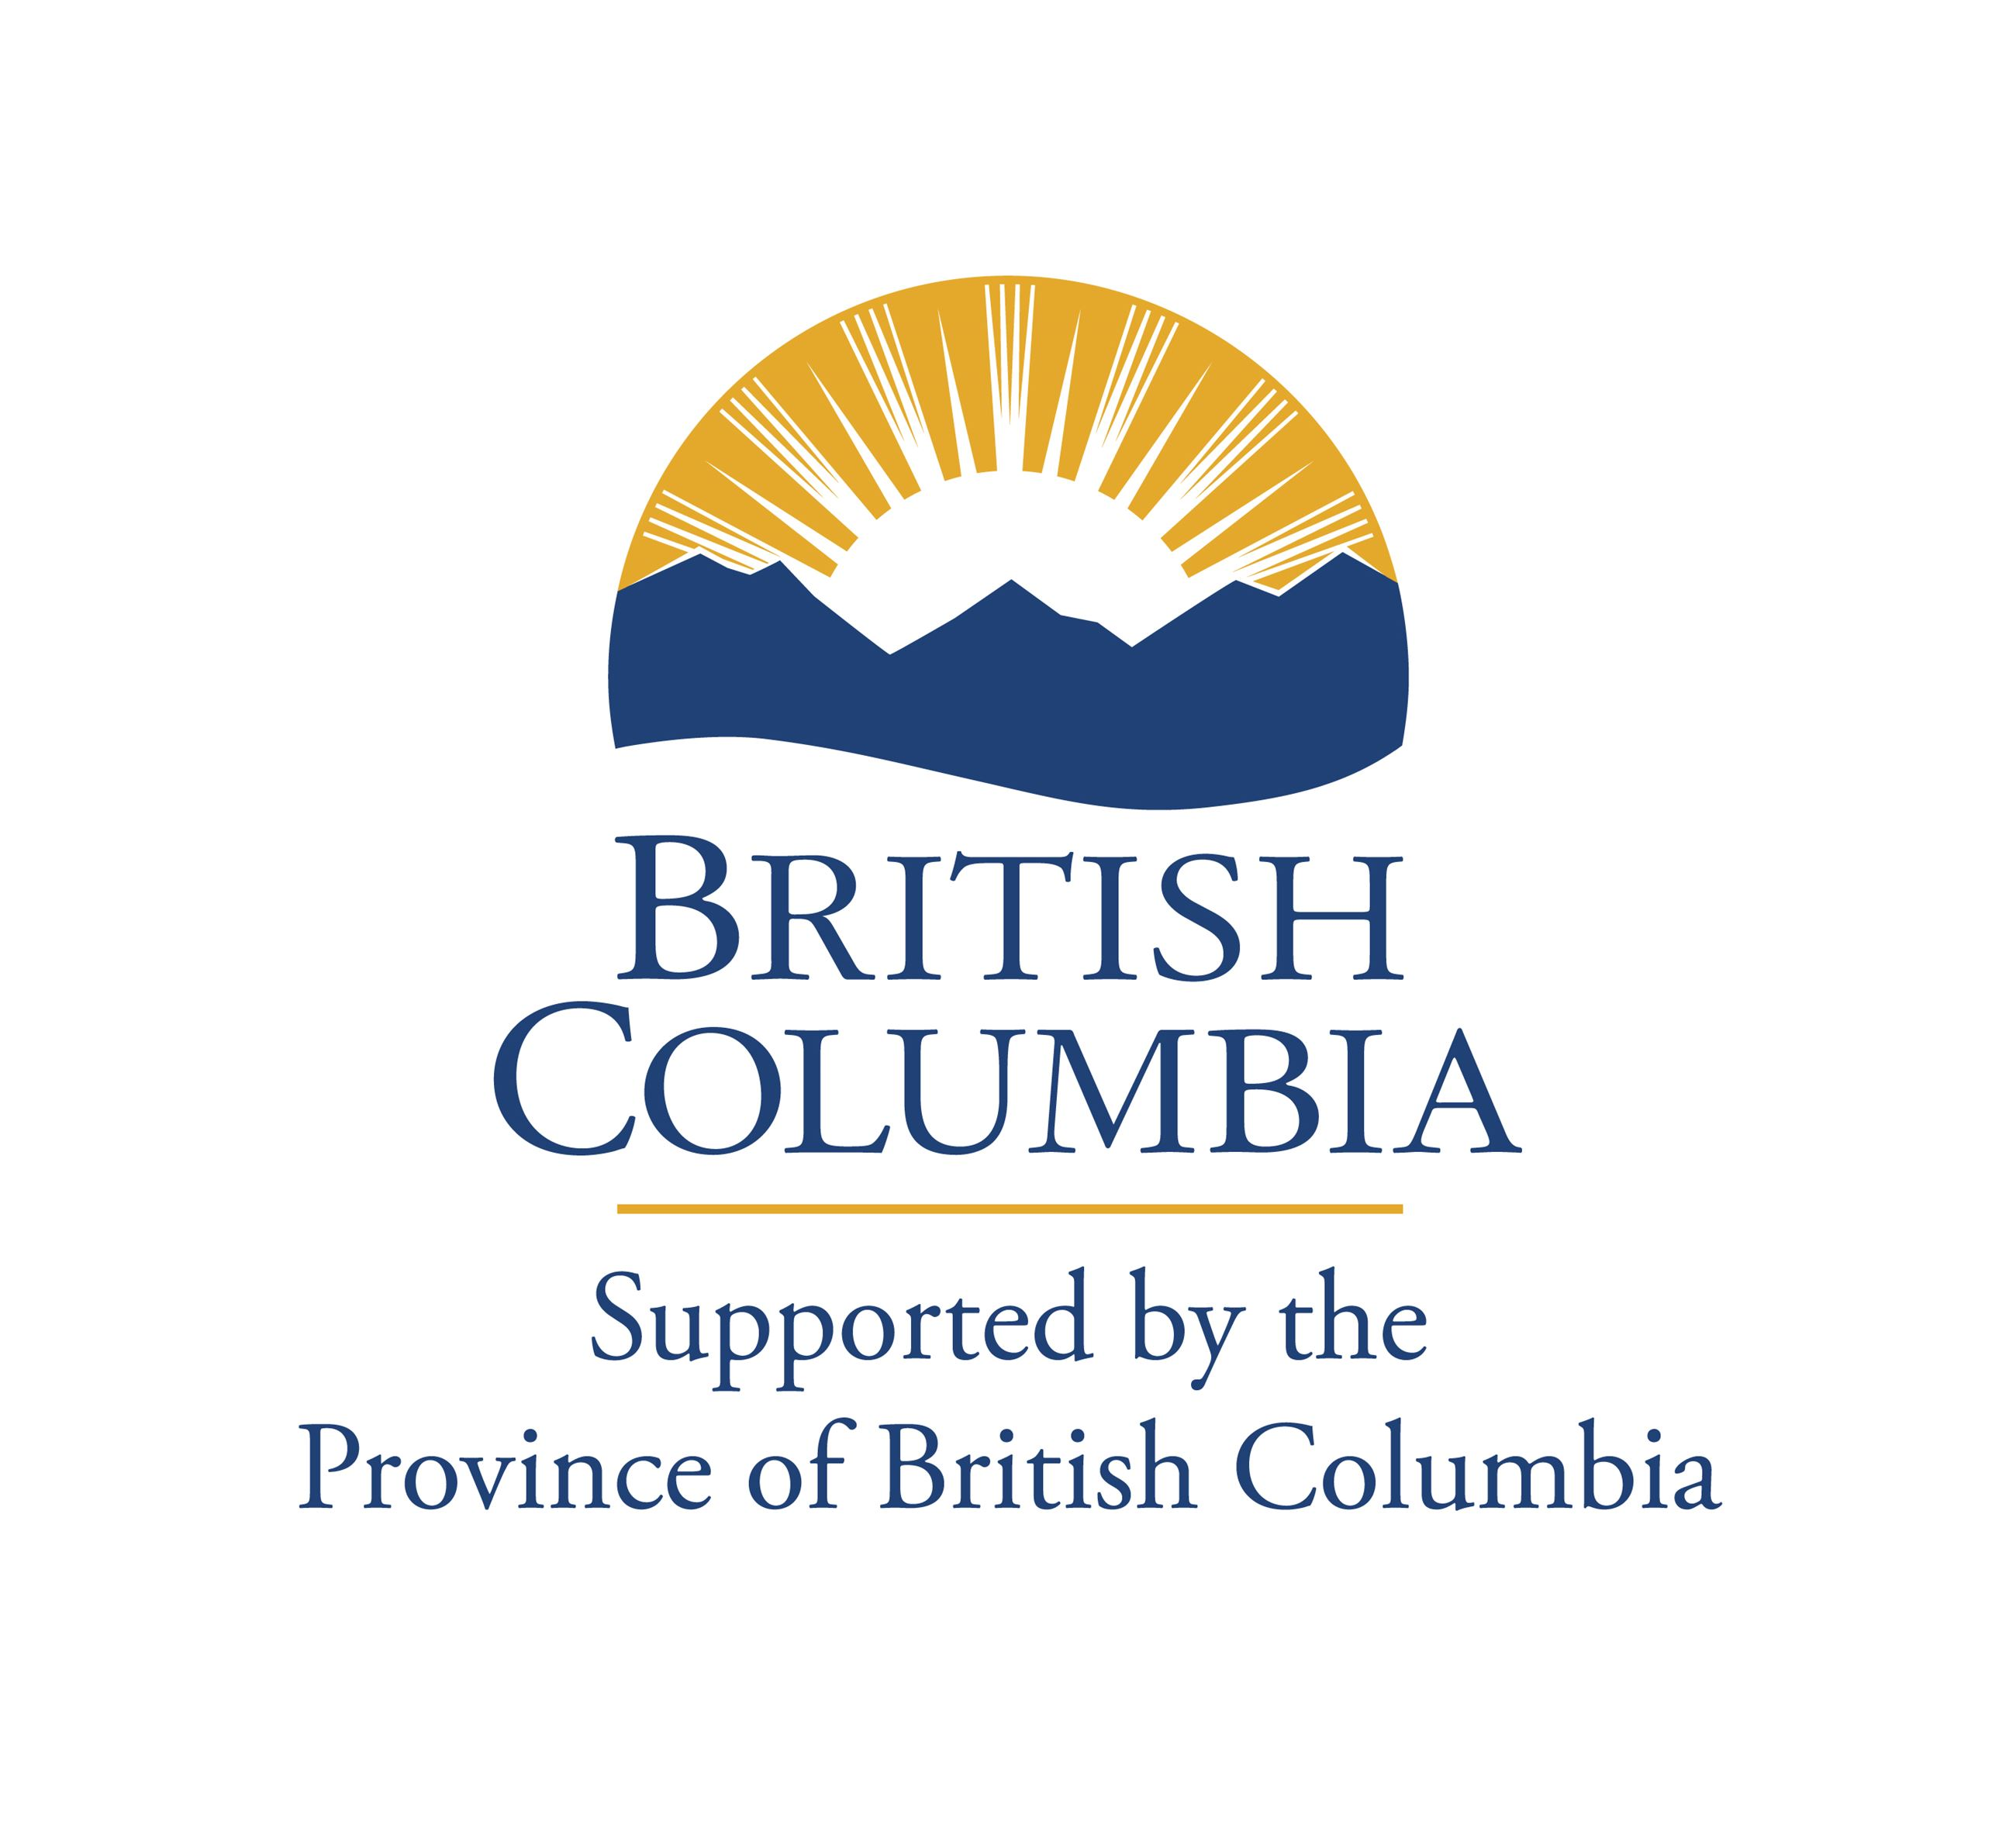 British Columbia Supported by the Province of British Columbia